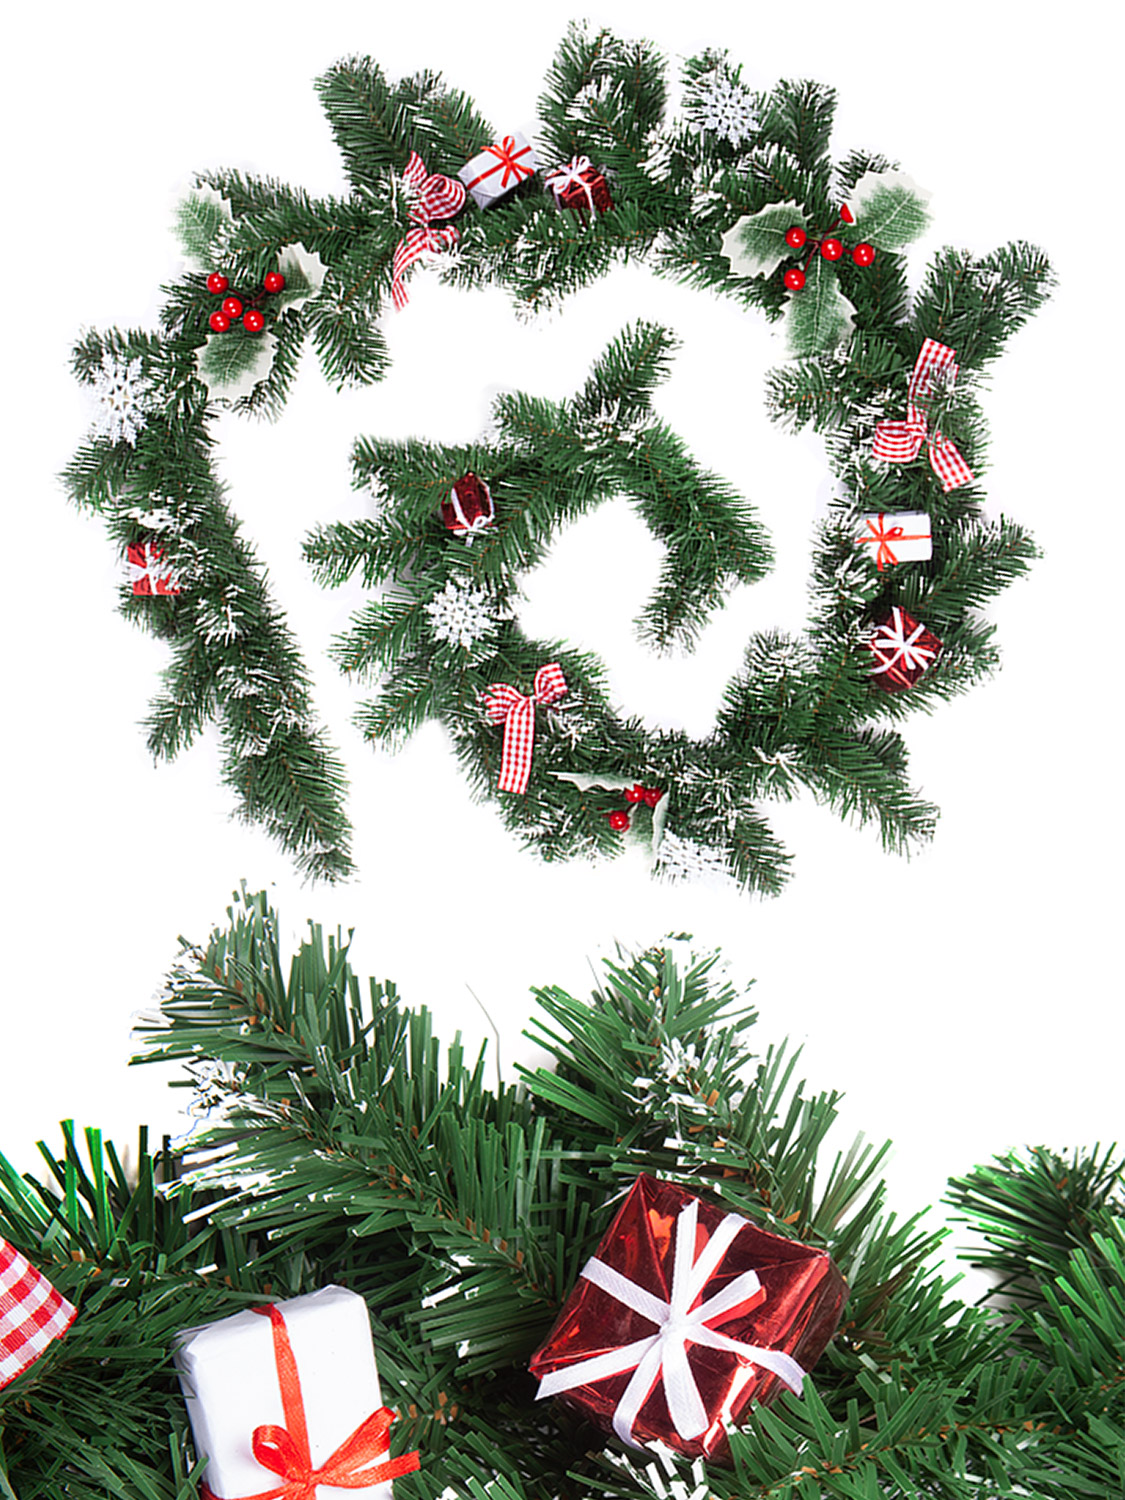 Christmas-Nordic-Wreath-Garland-Swag-Xmas-Scandi-Festive-Door-Mantle-Decoration thumbnail 8